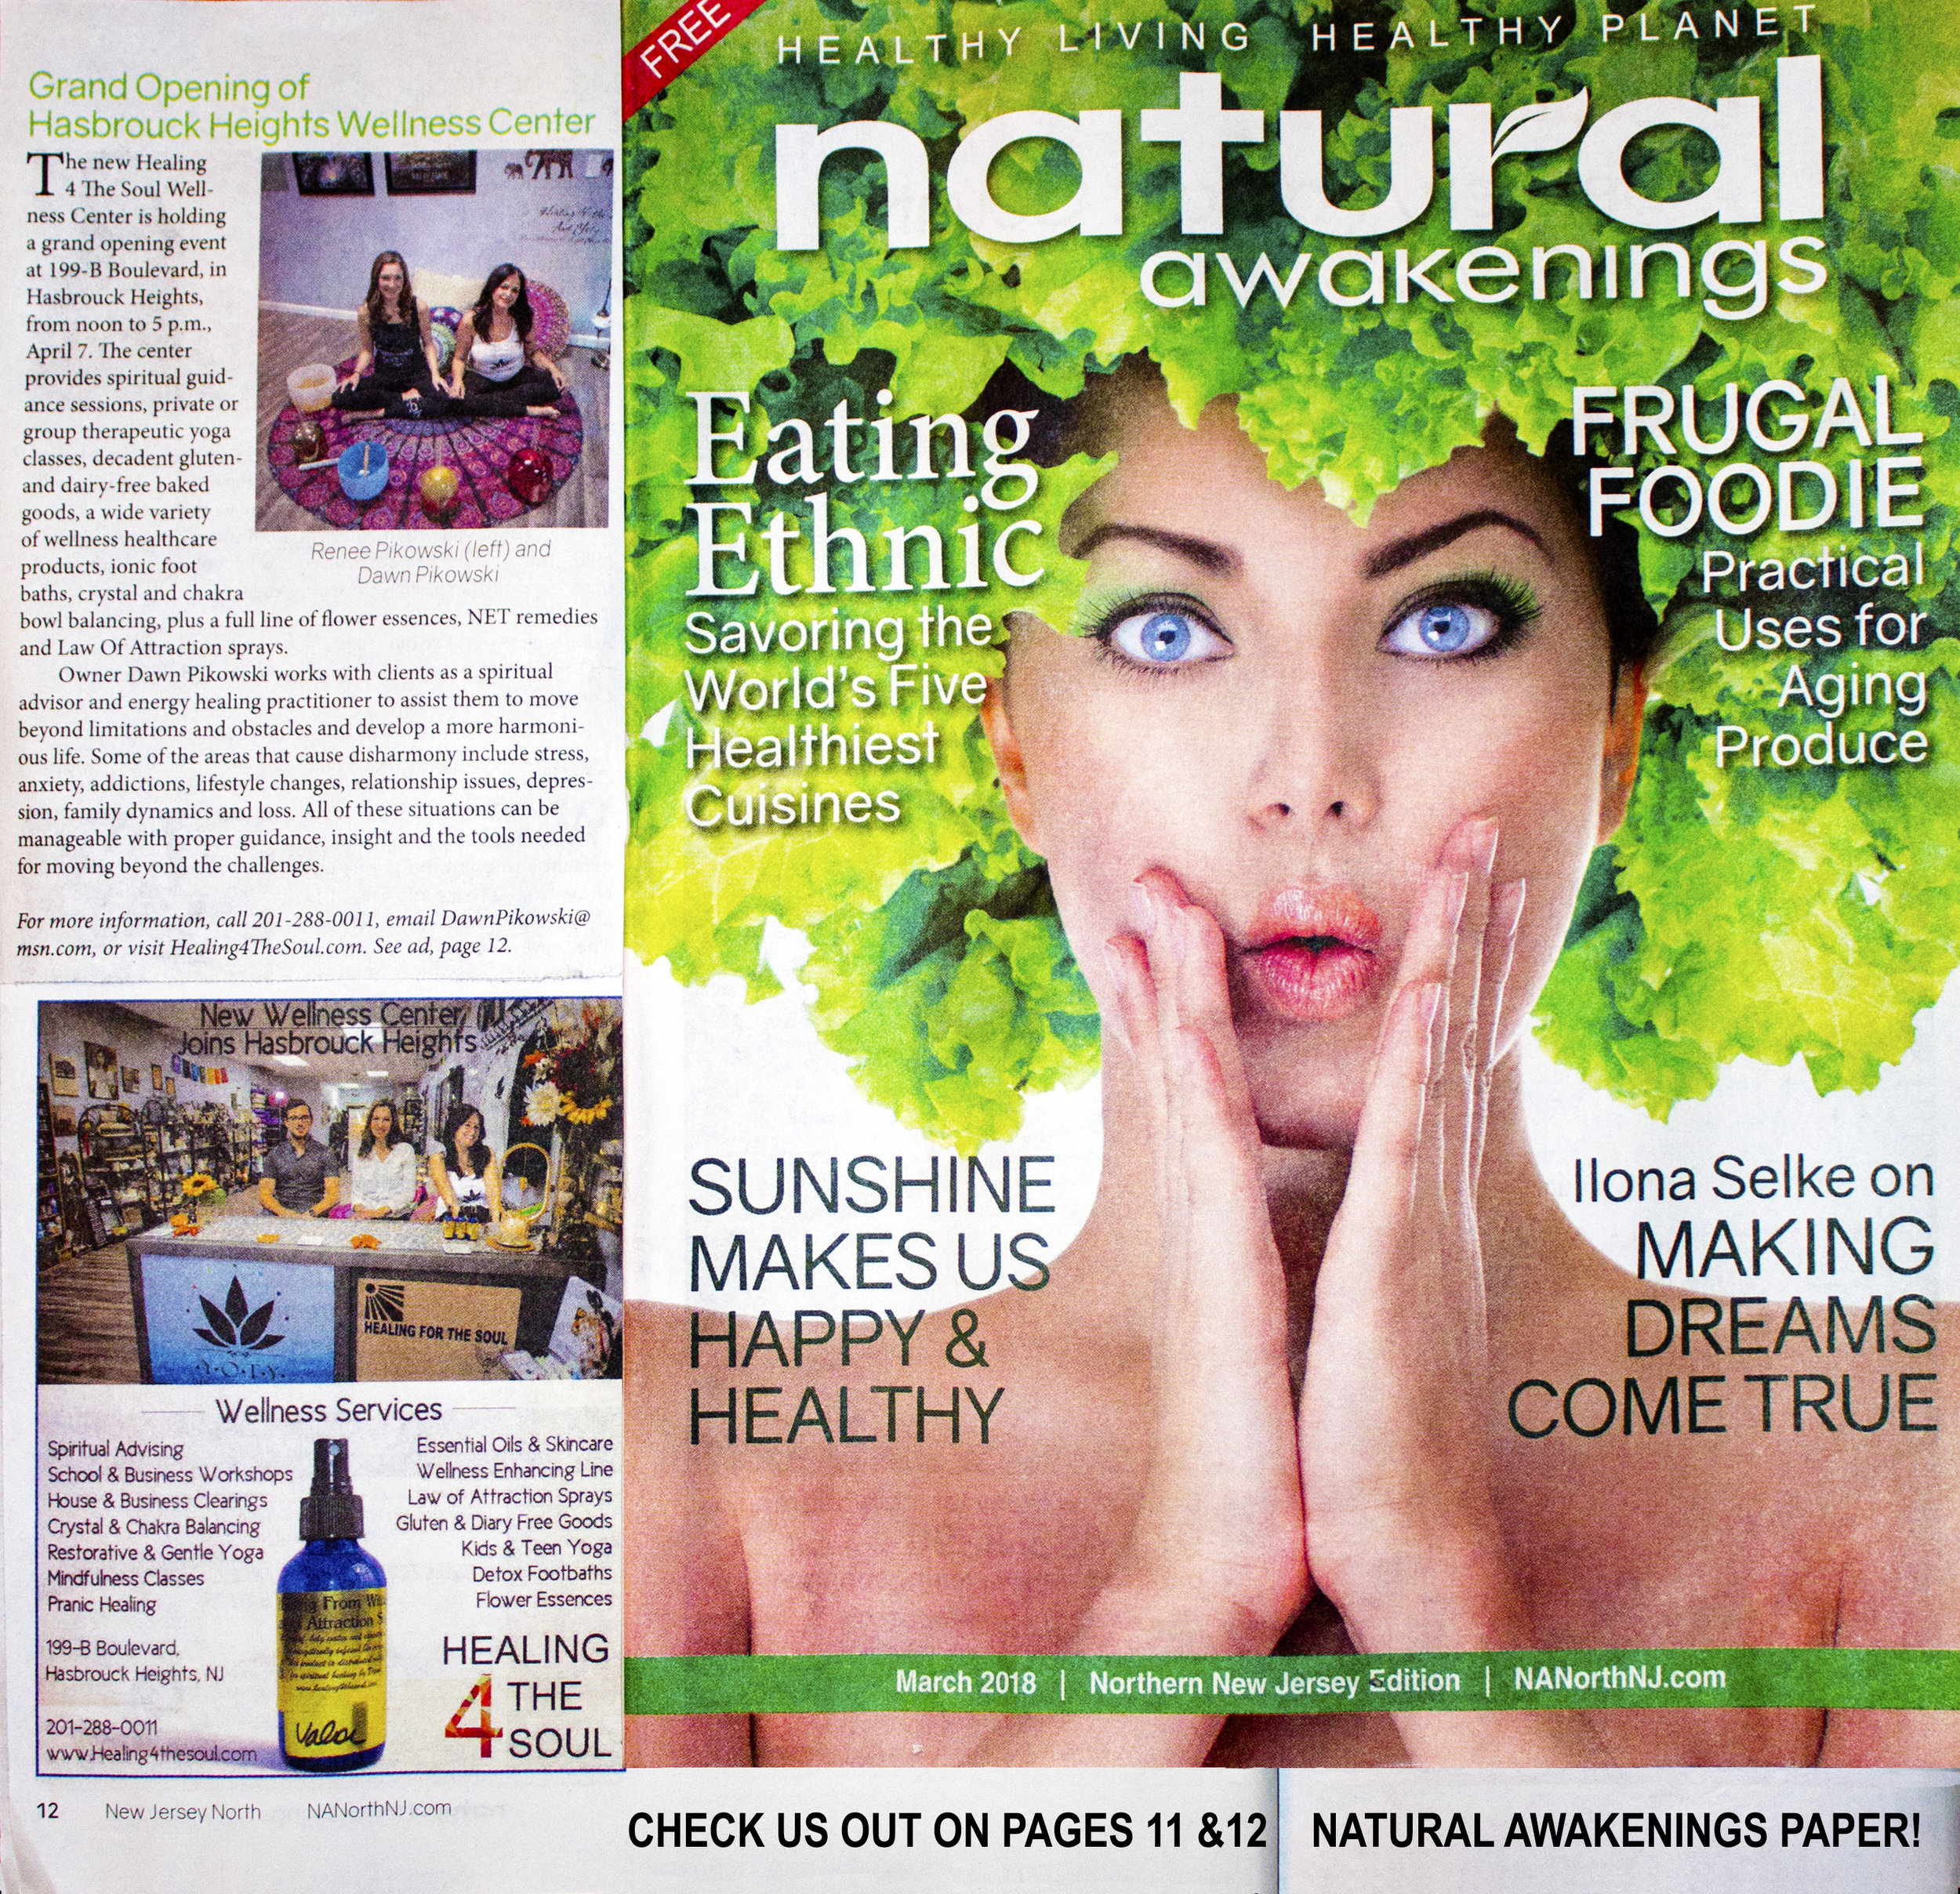 NATURAL AWAKENINGS NEWSPAPAER.jpg